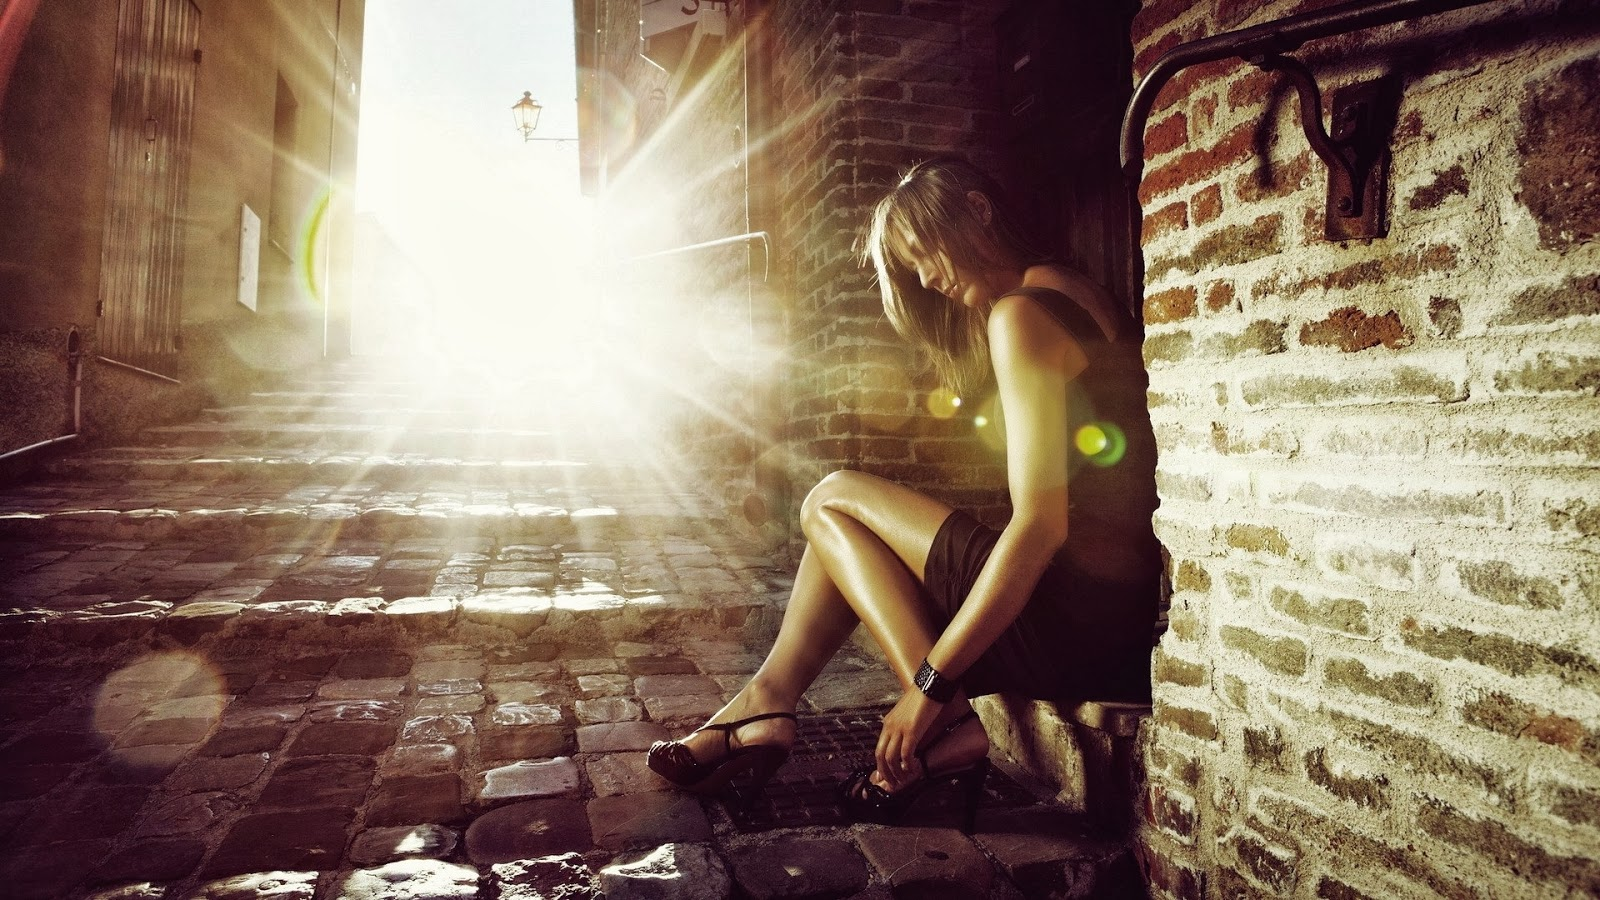 Most Beautiful Girl Wallpapers: Sad Face Of Female And ...